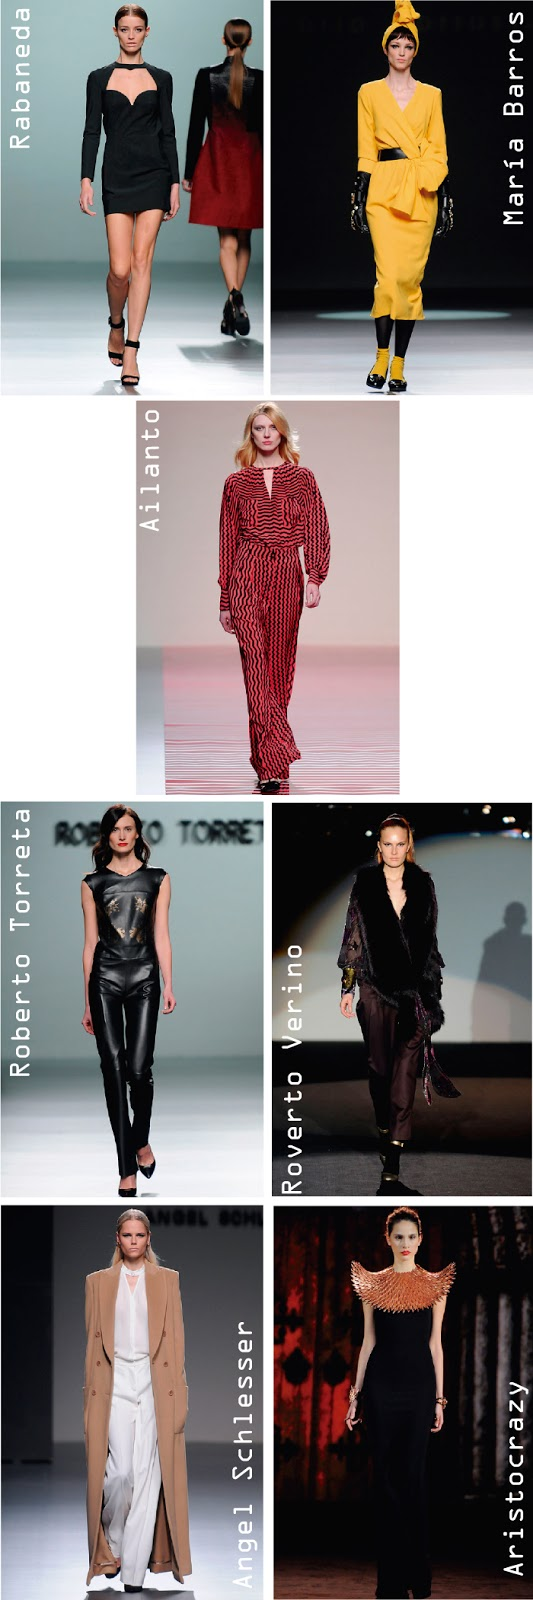 Mercedes-Benz Fashion Week Madrid, MBFWM, otoño invierno 2013,